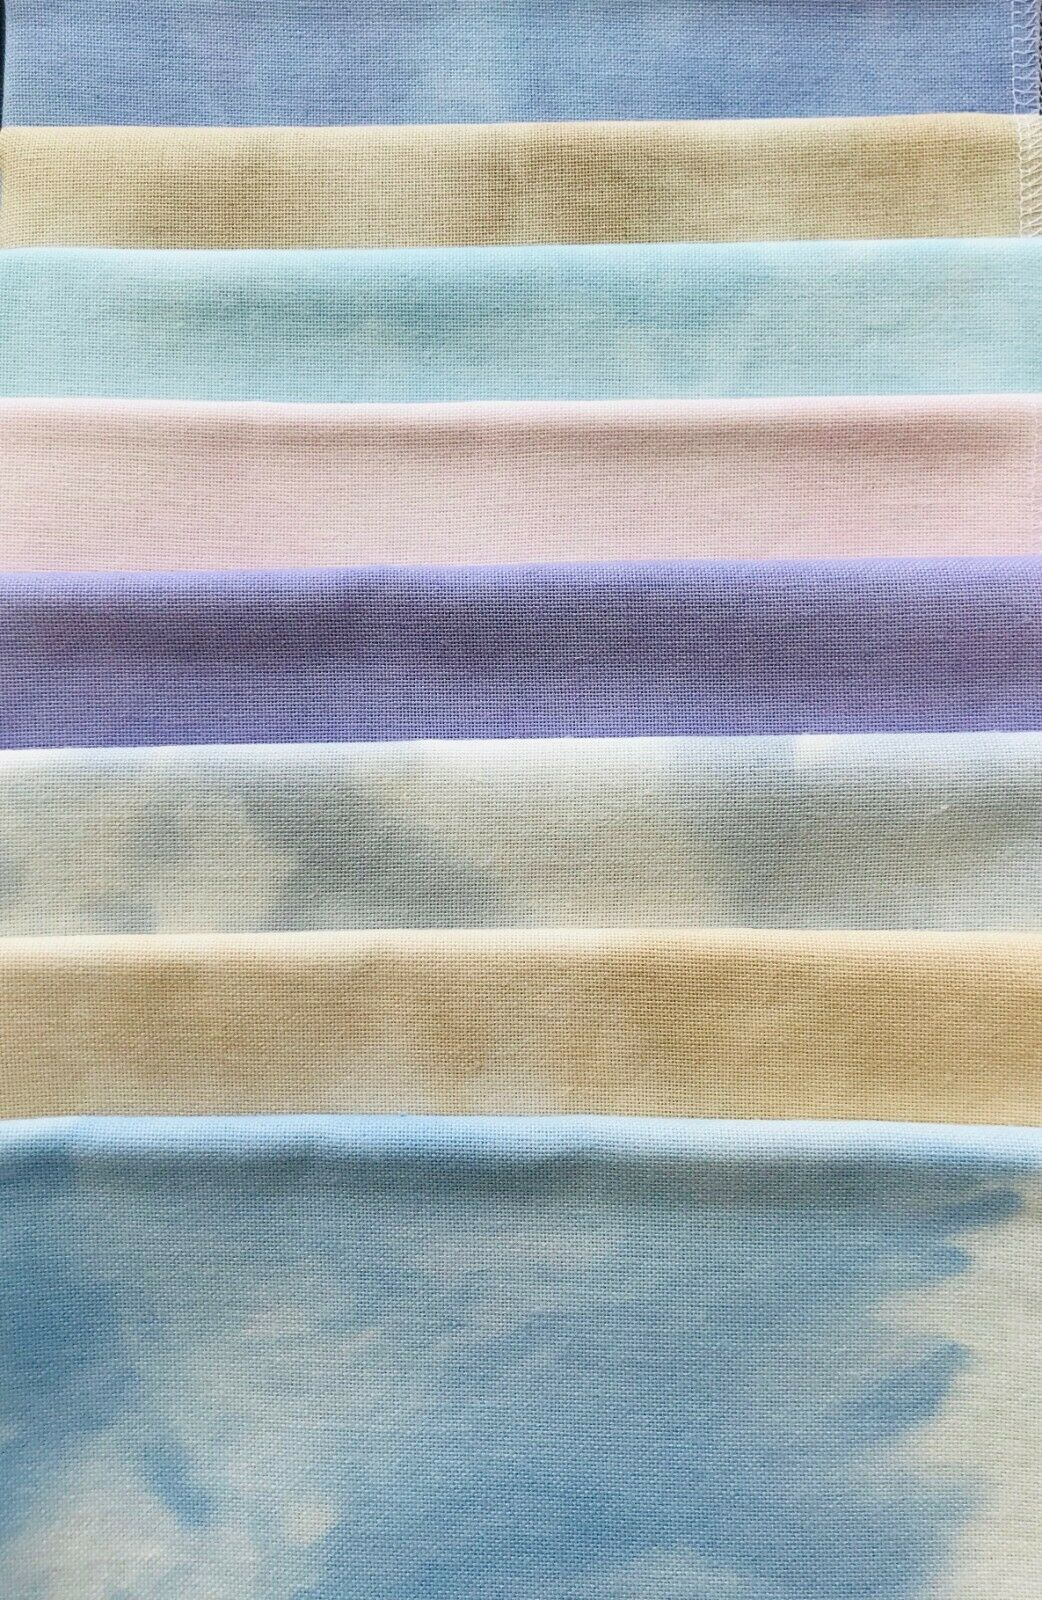 Primary image for Zweigart Wexford Linen 32 Count Hand Dyed 18 x 32 Cross Stitch & Embroidery